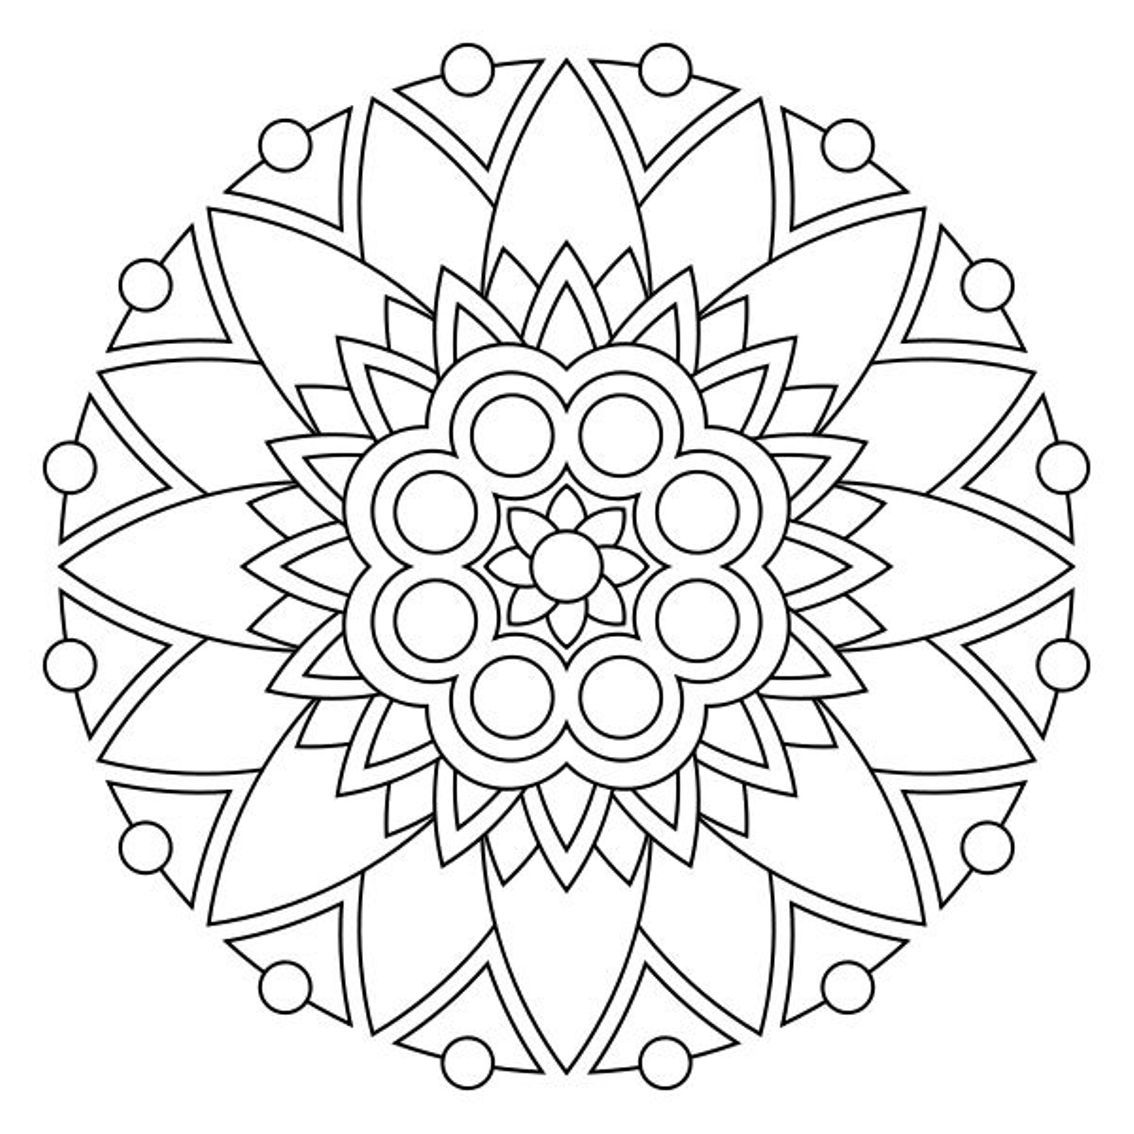 Geometric and abstract this is a modern mandala coloring page for ...